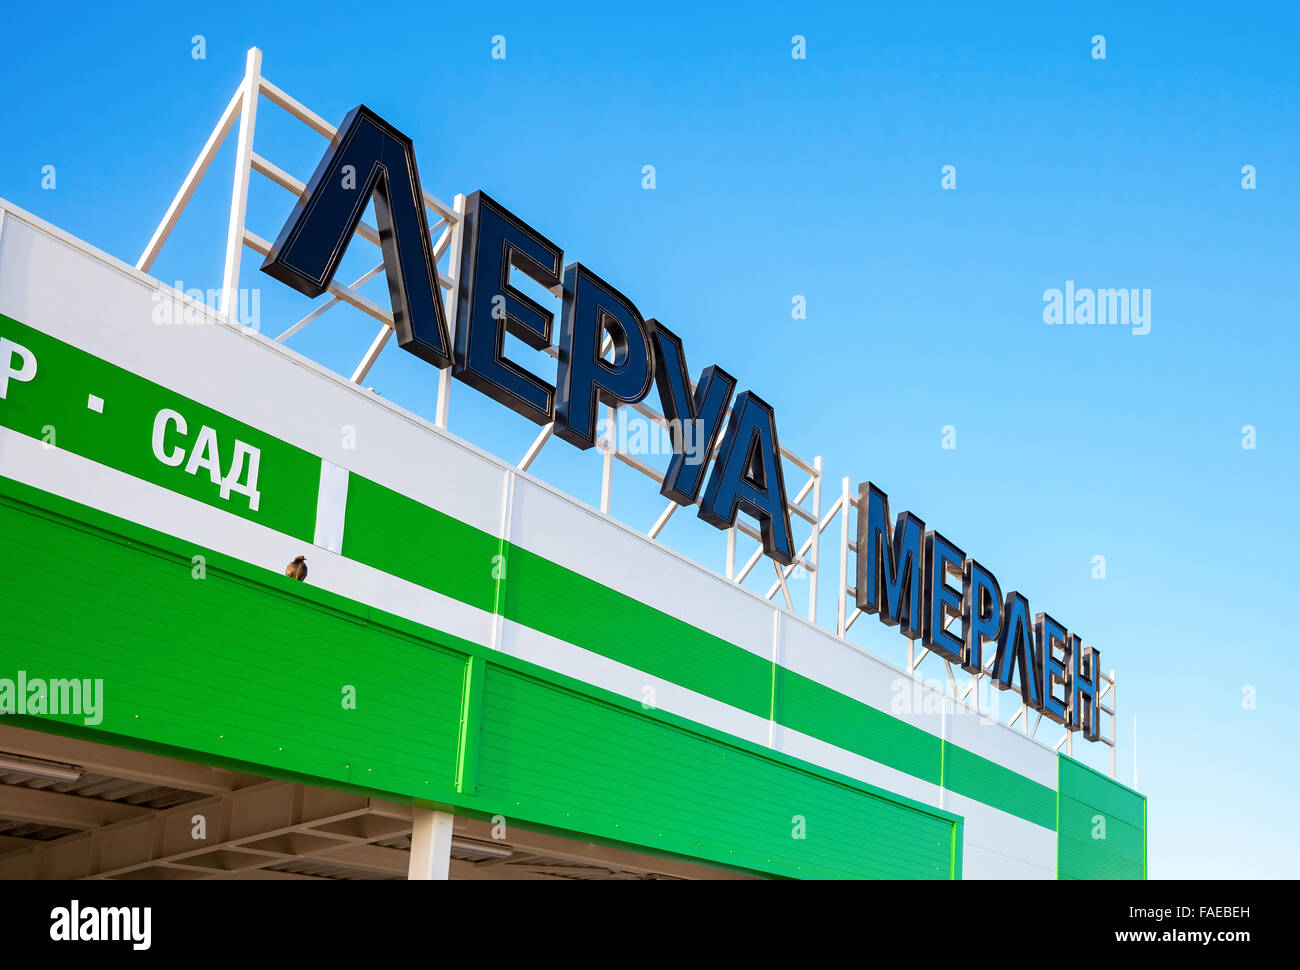 Leroy merlin brand sign against blue sky. text in russian: leroy